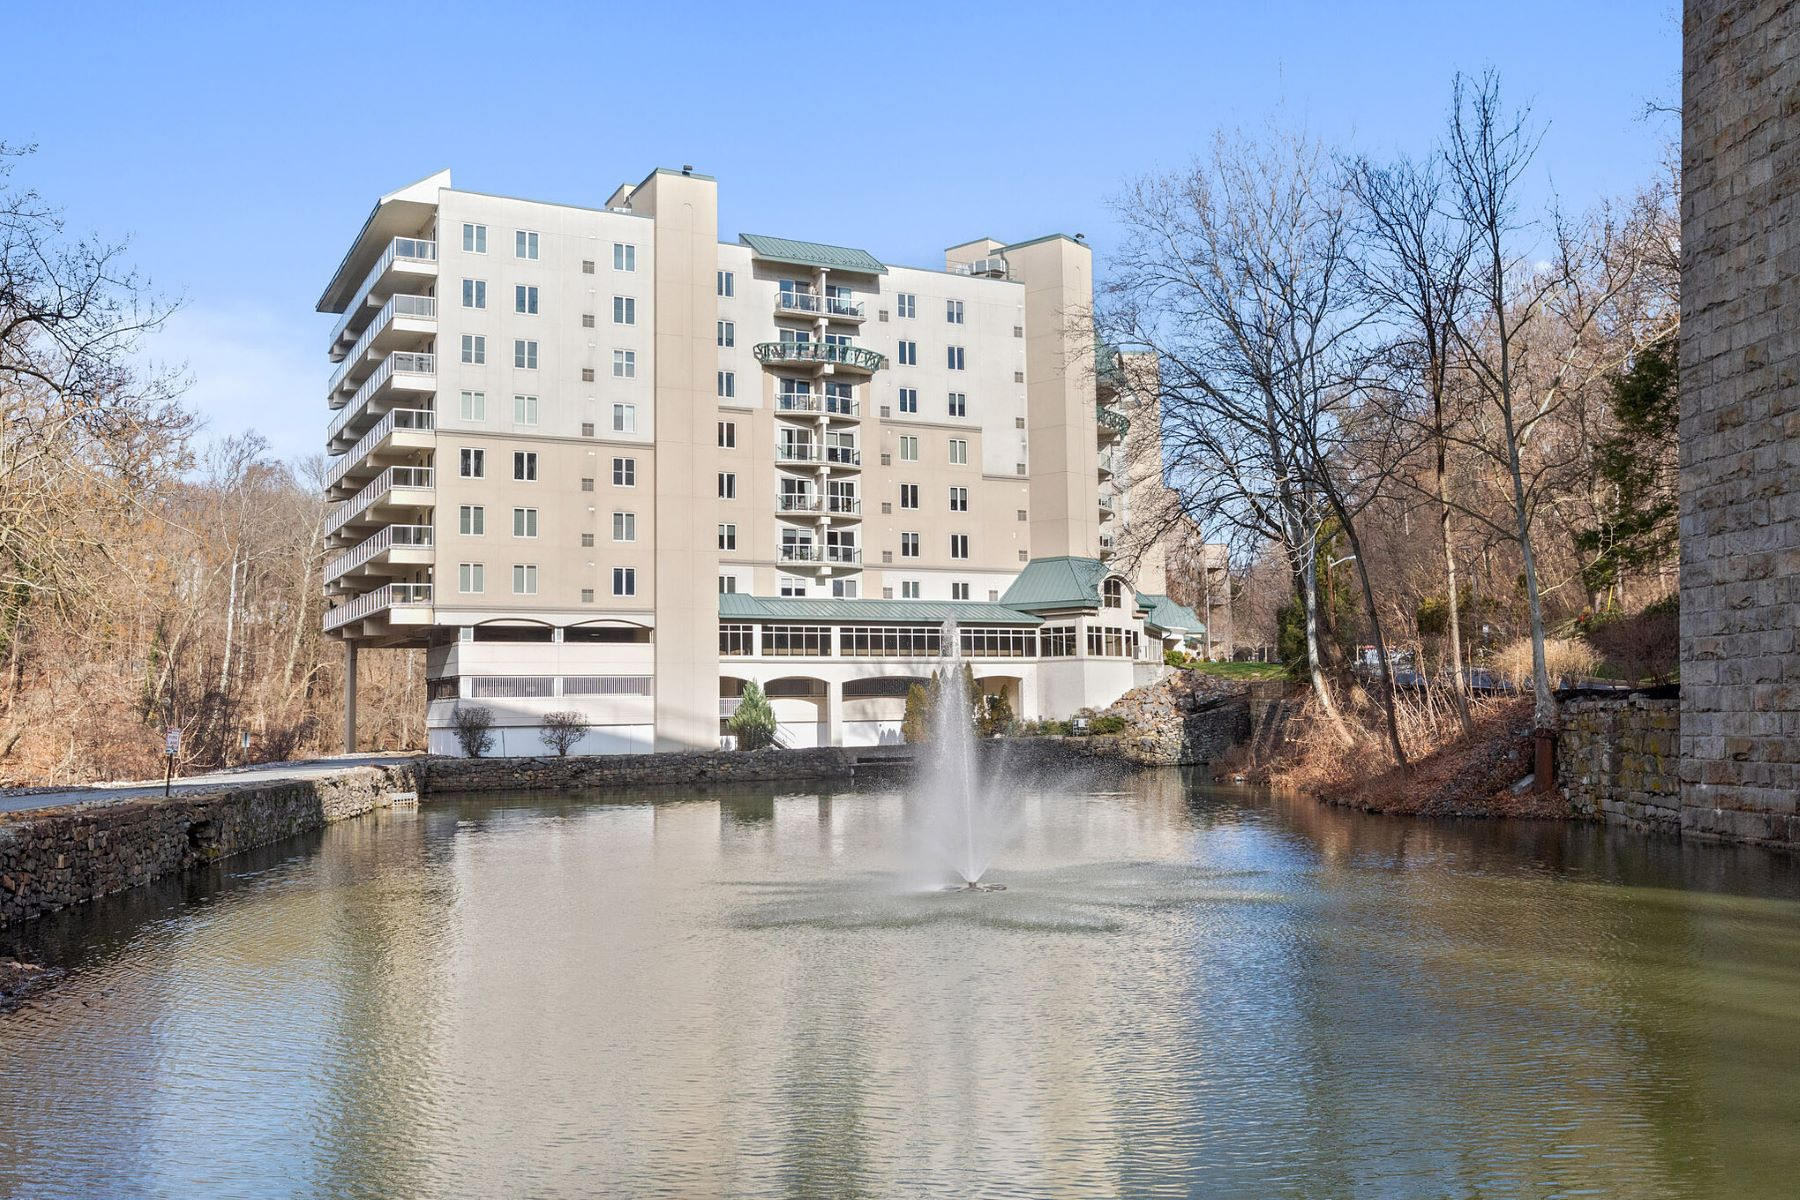 Condominiums for Active at 1702 N. Park Dr., #18, Wilmington, DE 19806 1702- Unit N Park Drive # 18 Wilmington, Delaware 19806 United States